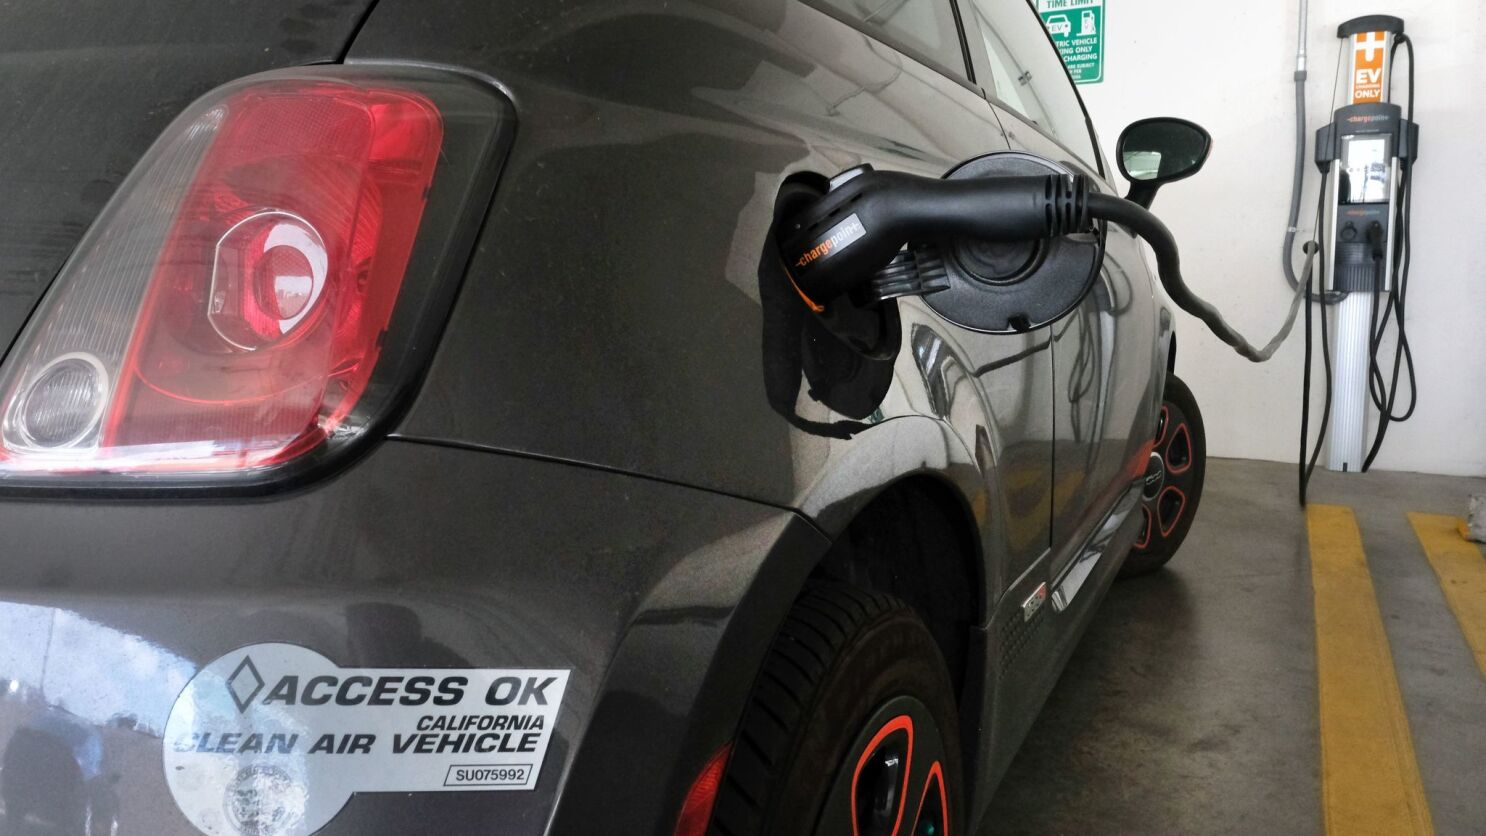 7e67e9649 Bill introduced banning gasoline-powered vehicles in California by 2040